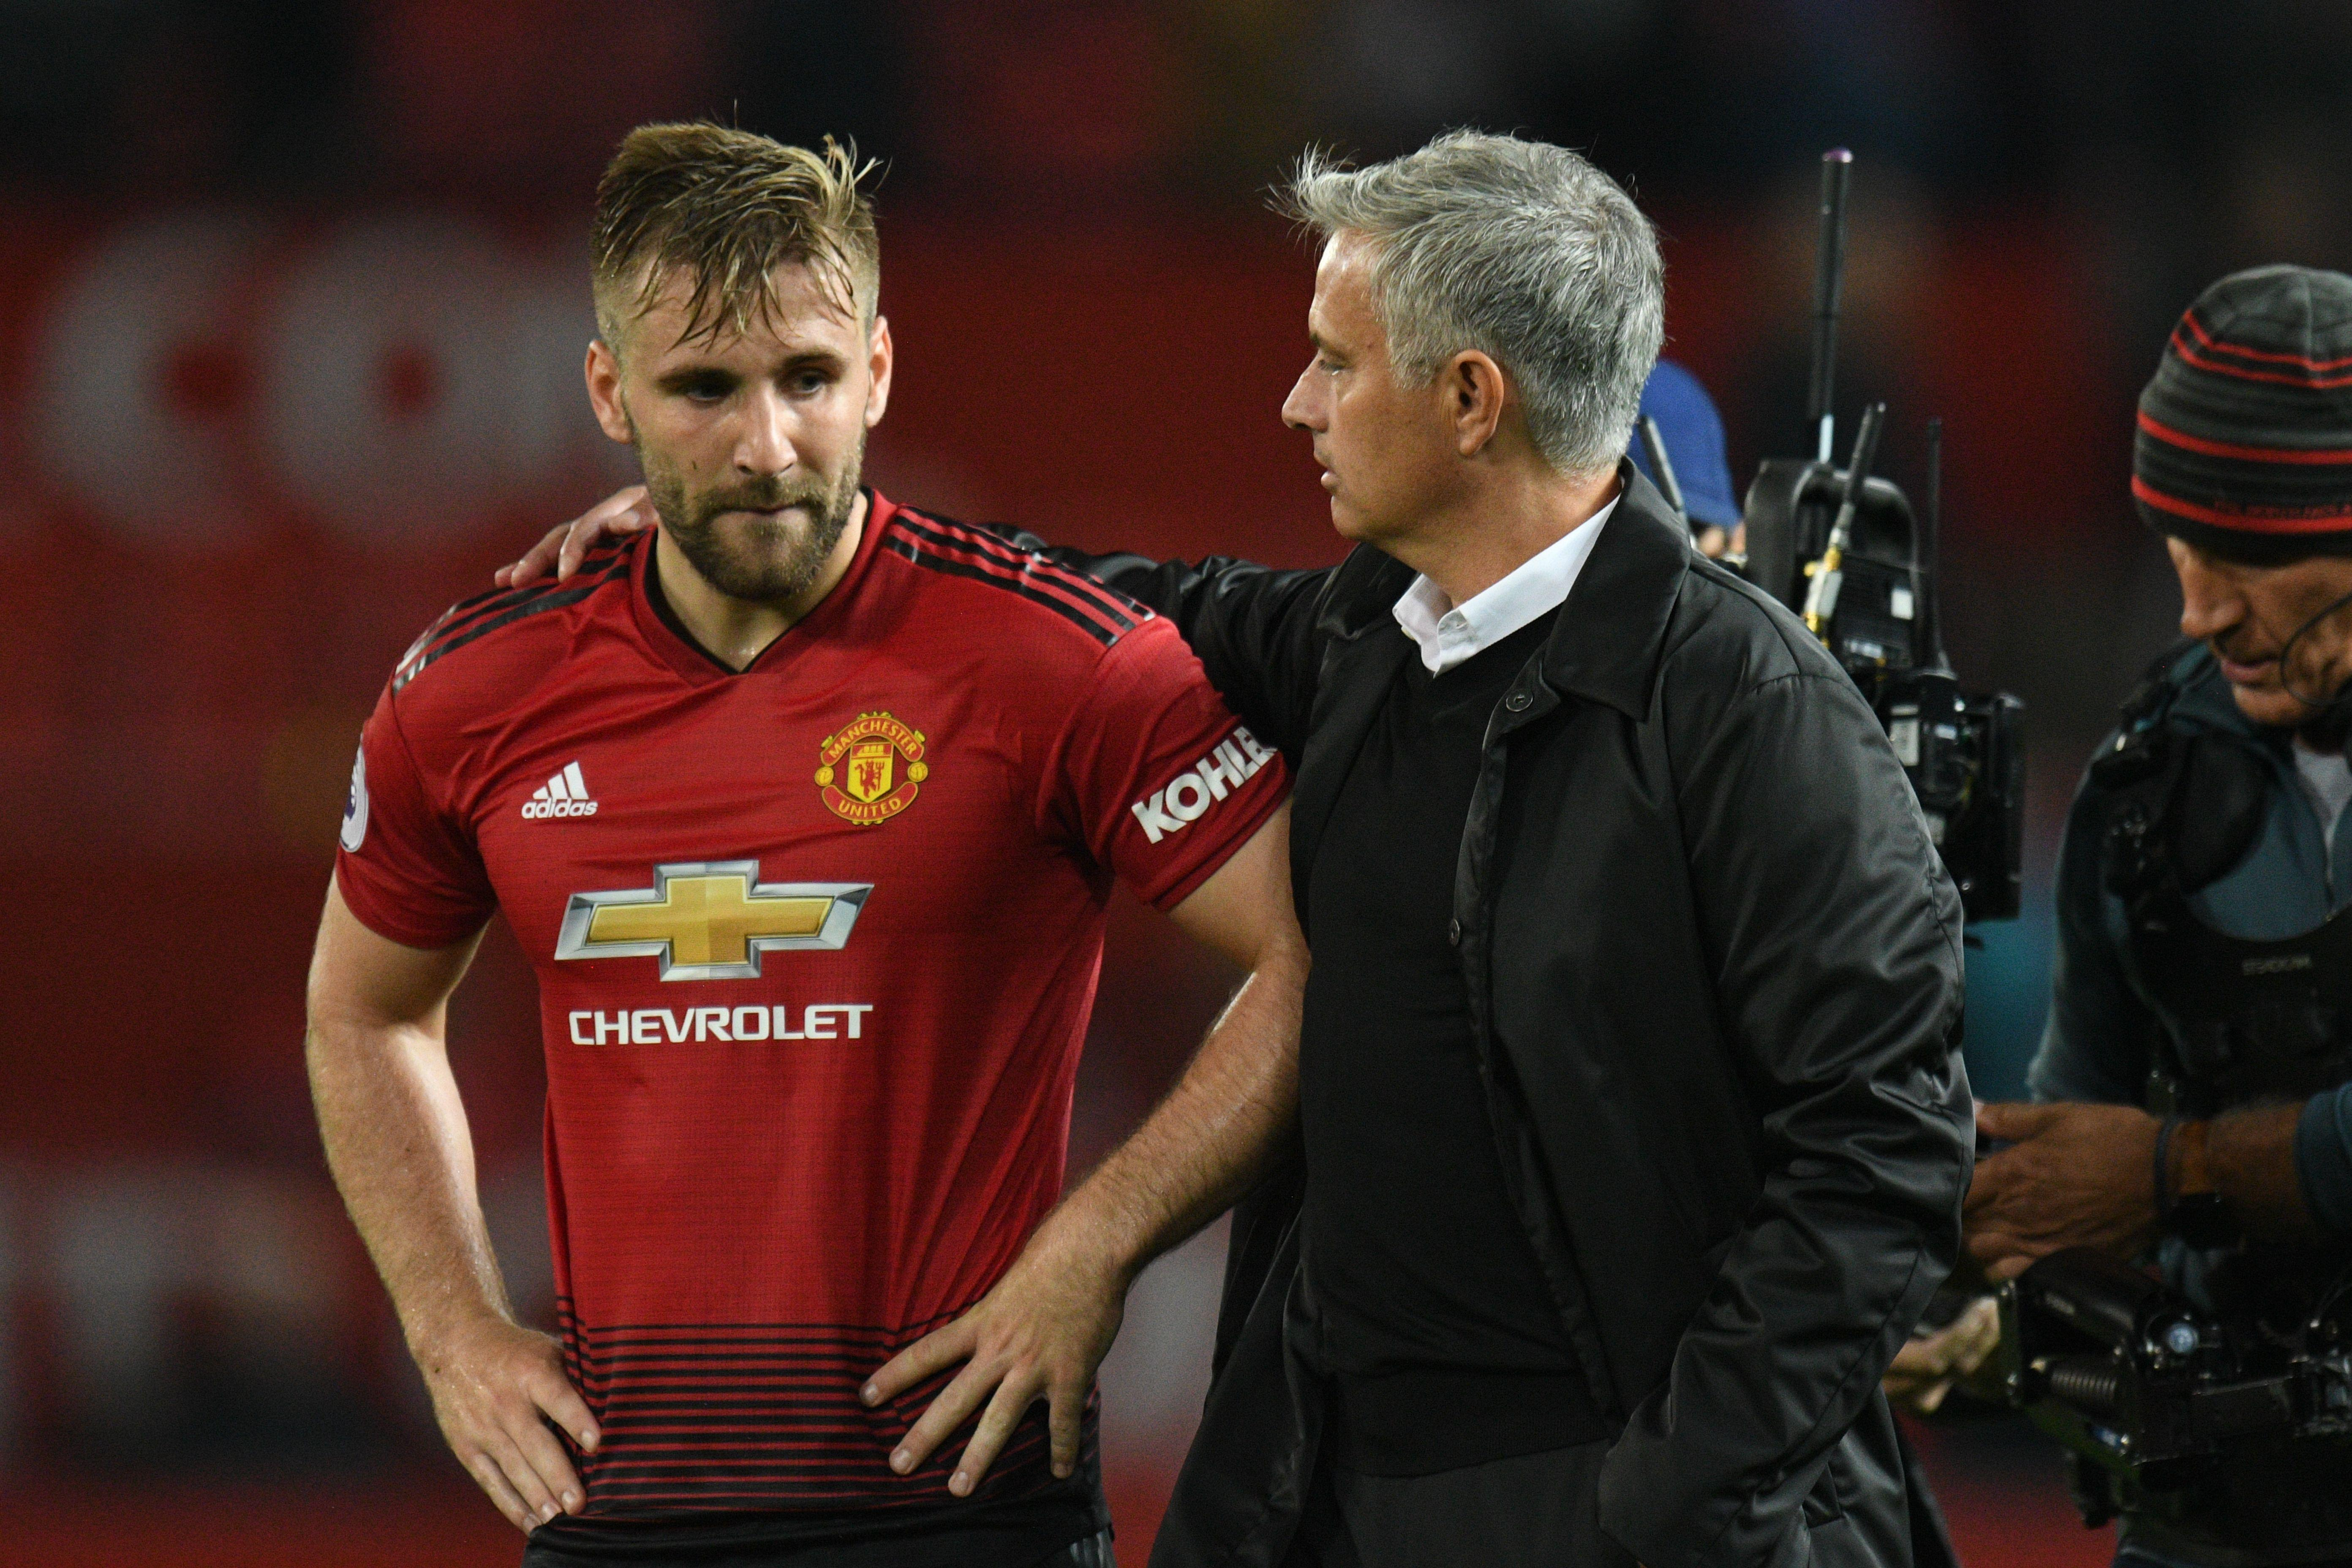 Luke Shaw's fine form has been one of the highlights of United's campaign